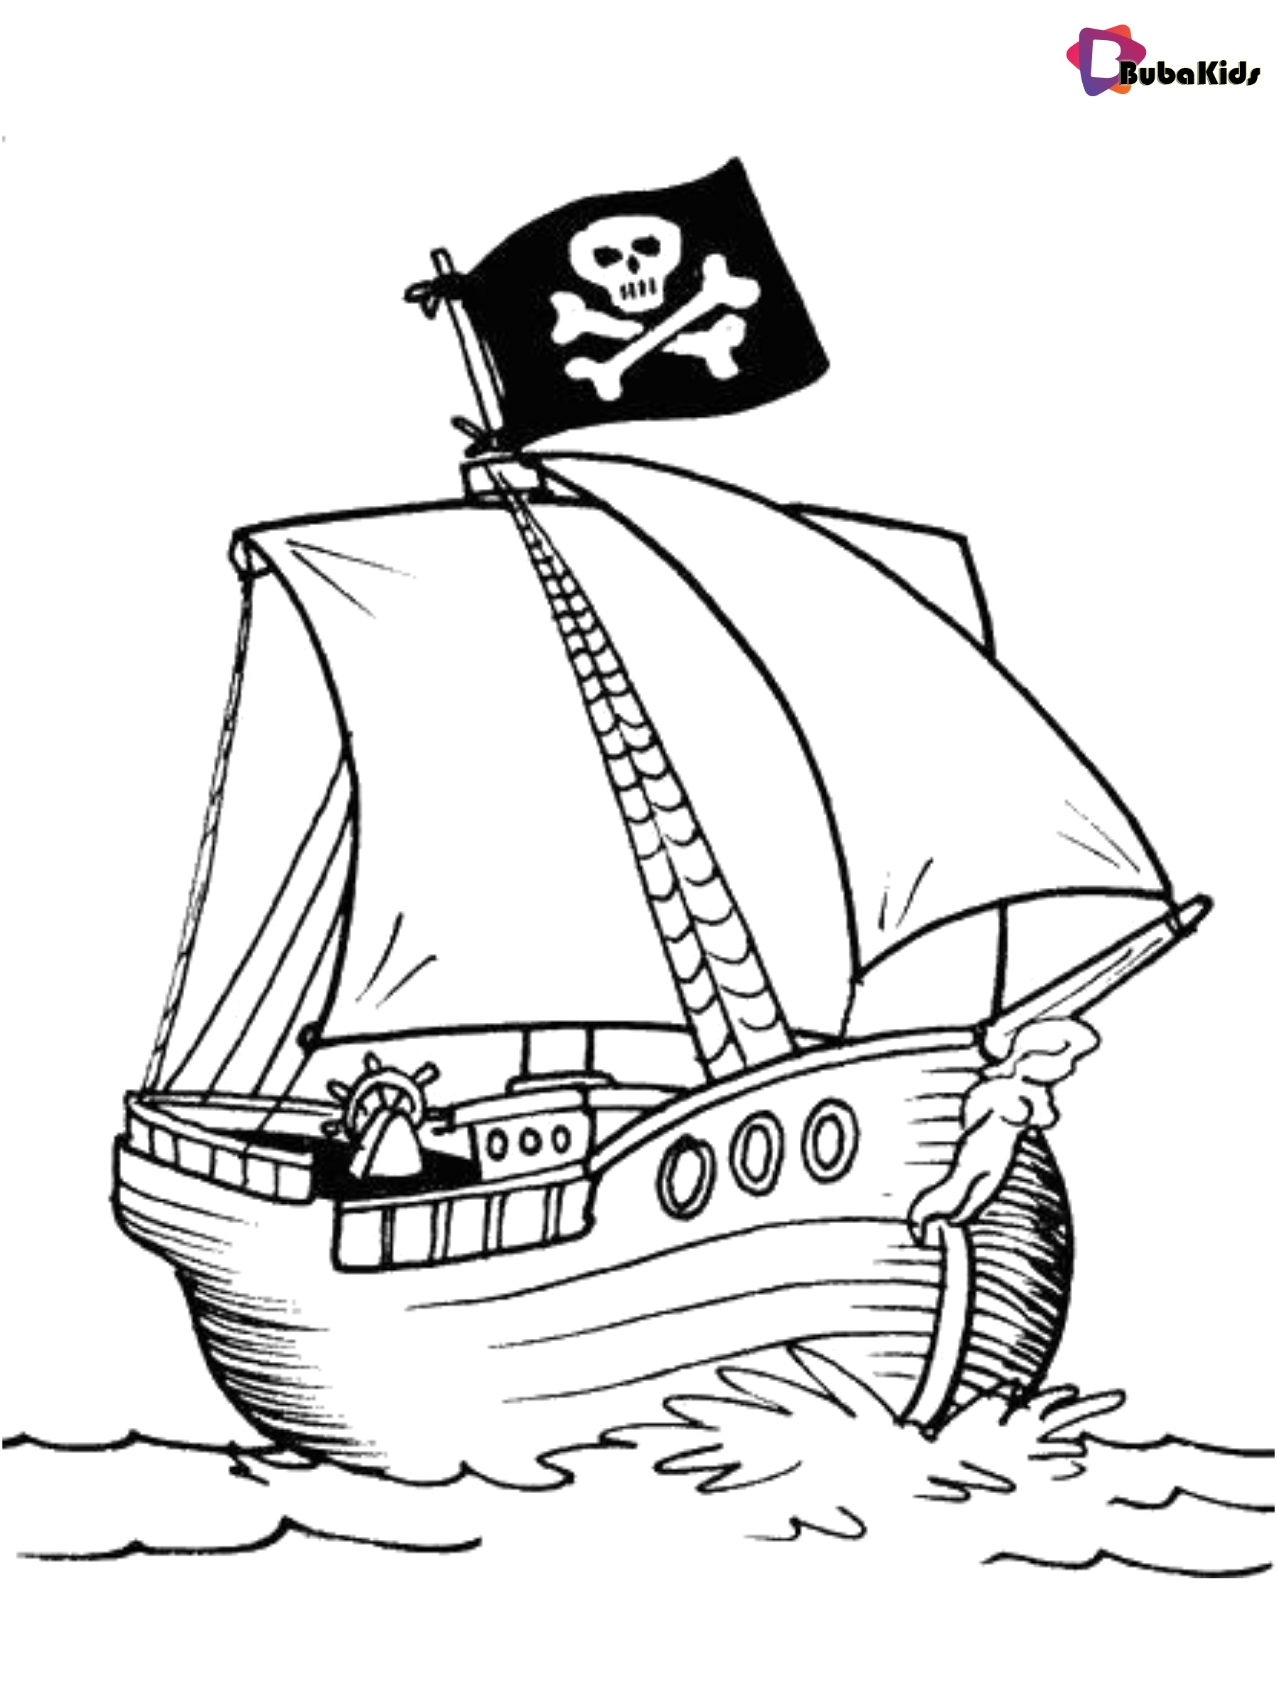 coloring ship for kids coloring picture pirate ship free printable bubakidscom coloring kids ship for